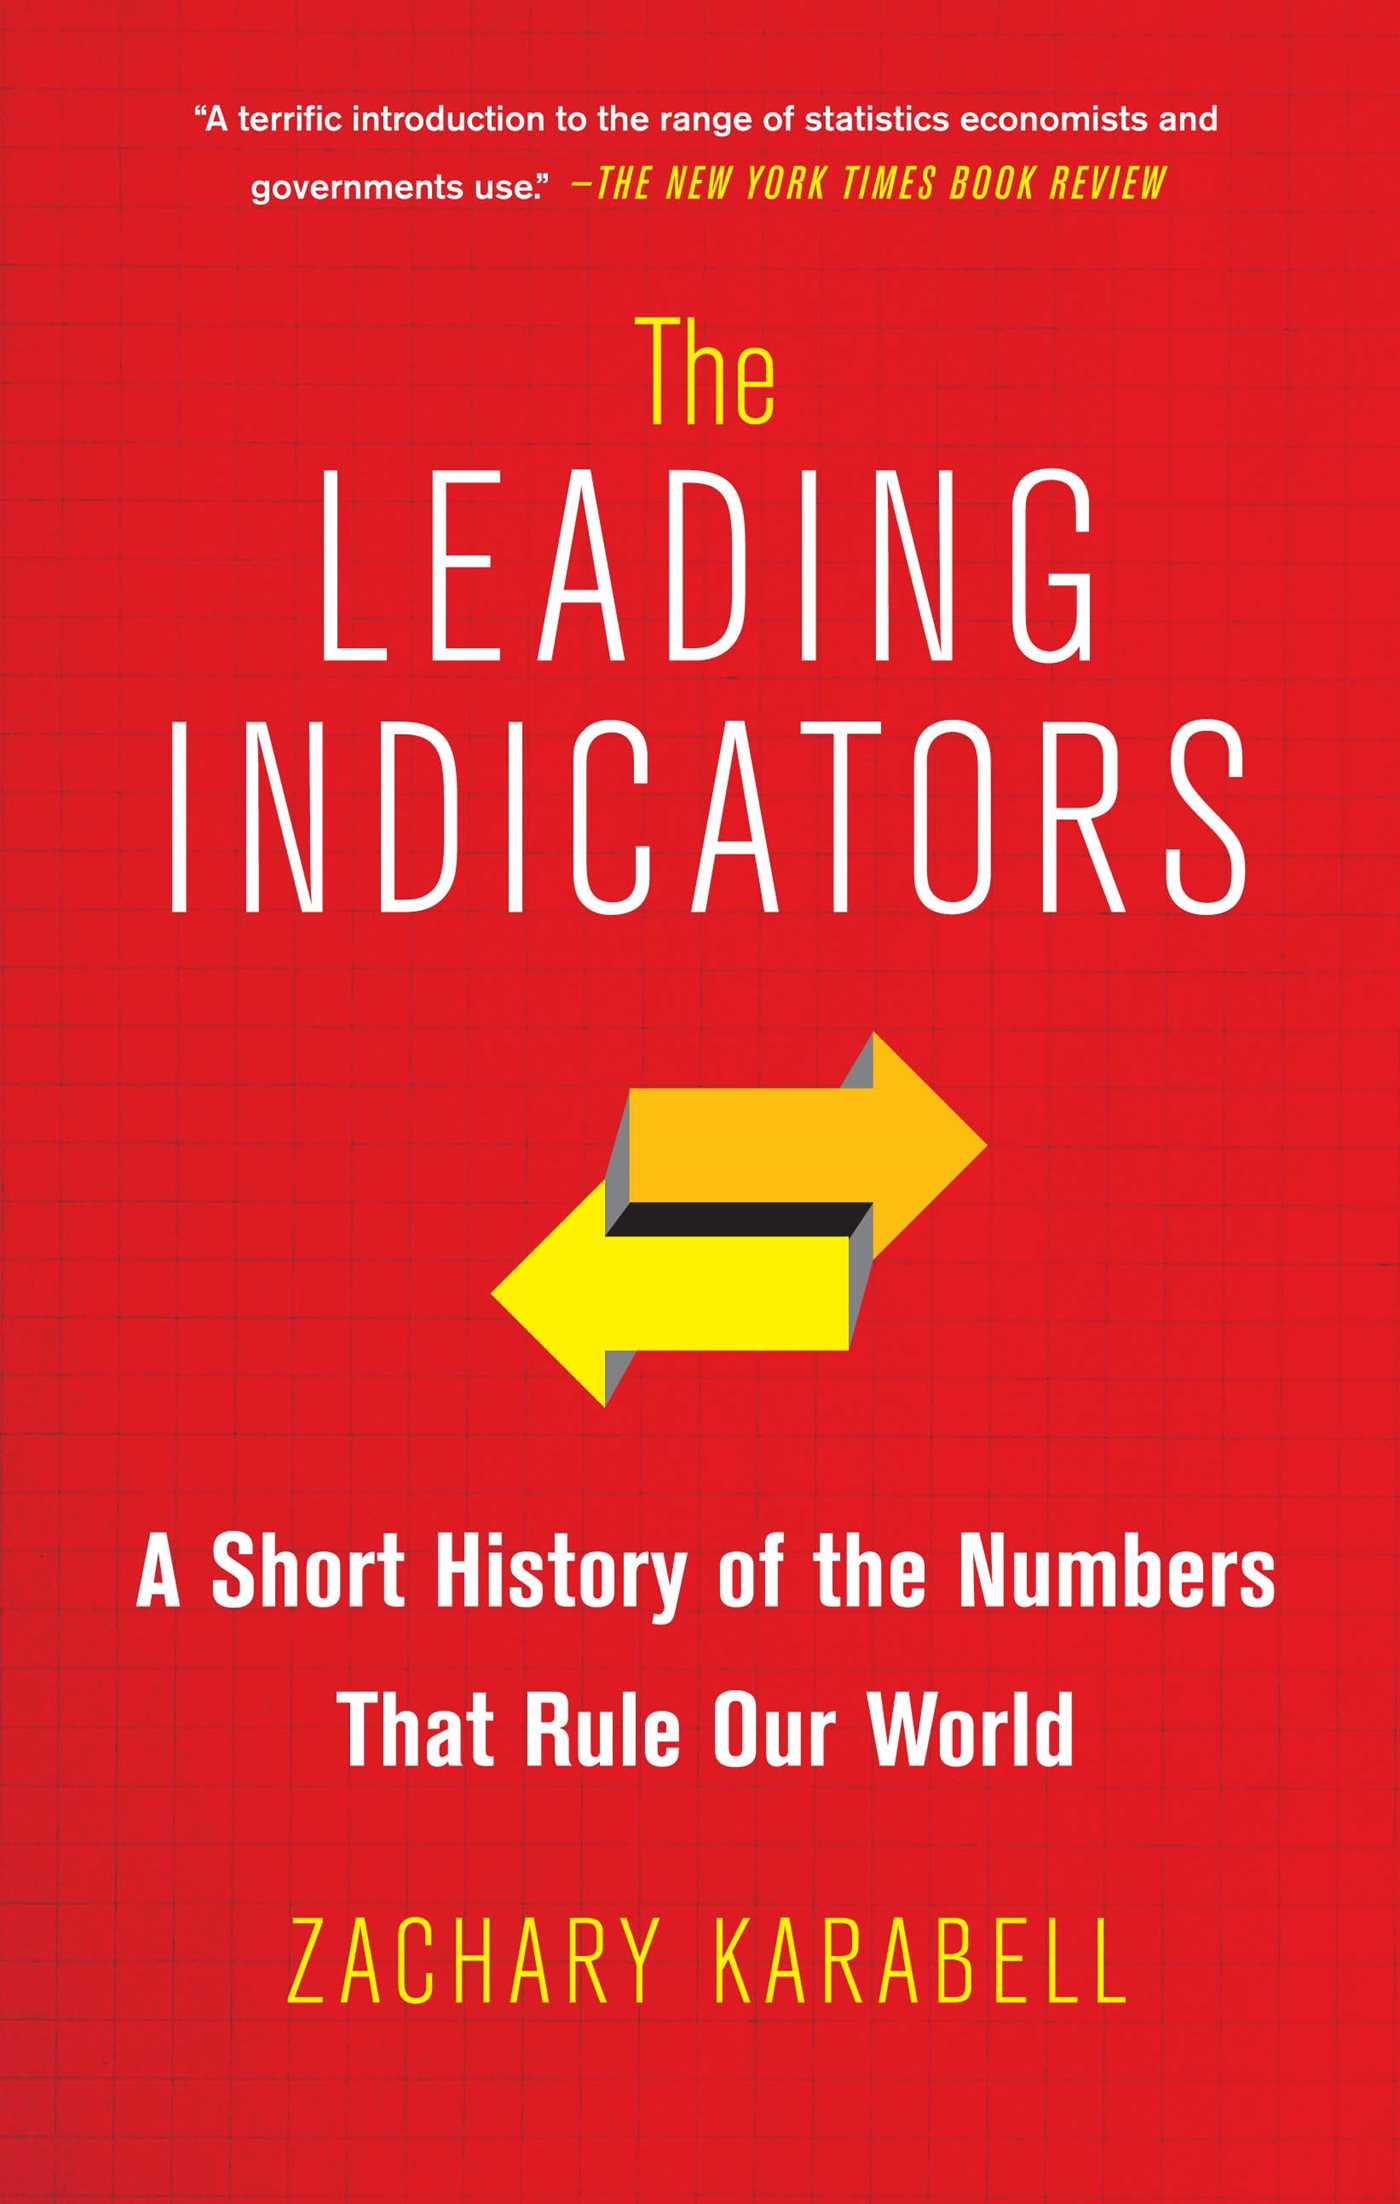 The leading indicators 9781451651225 hr